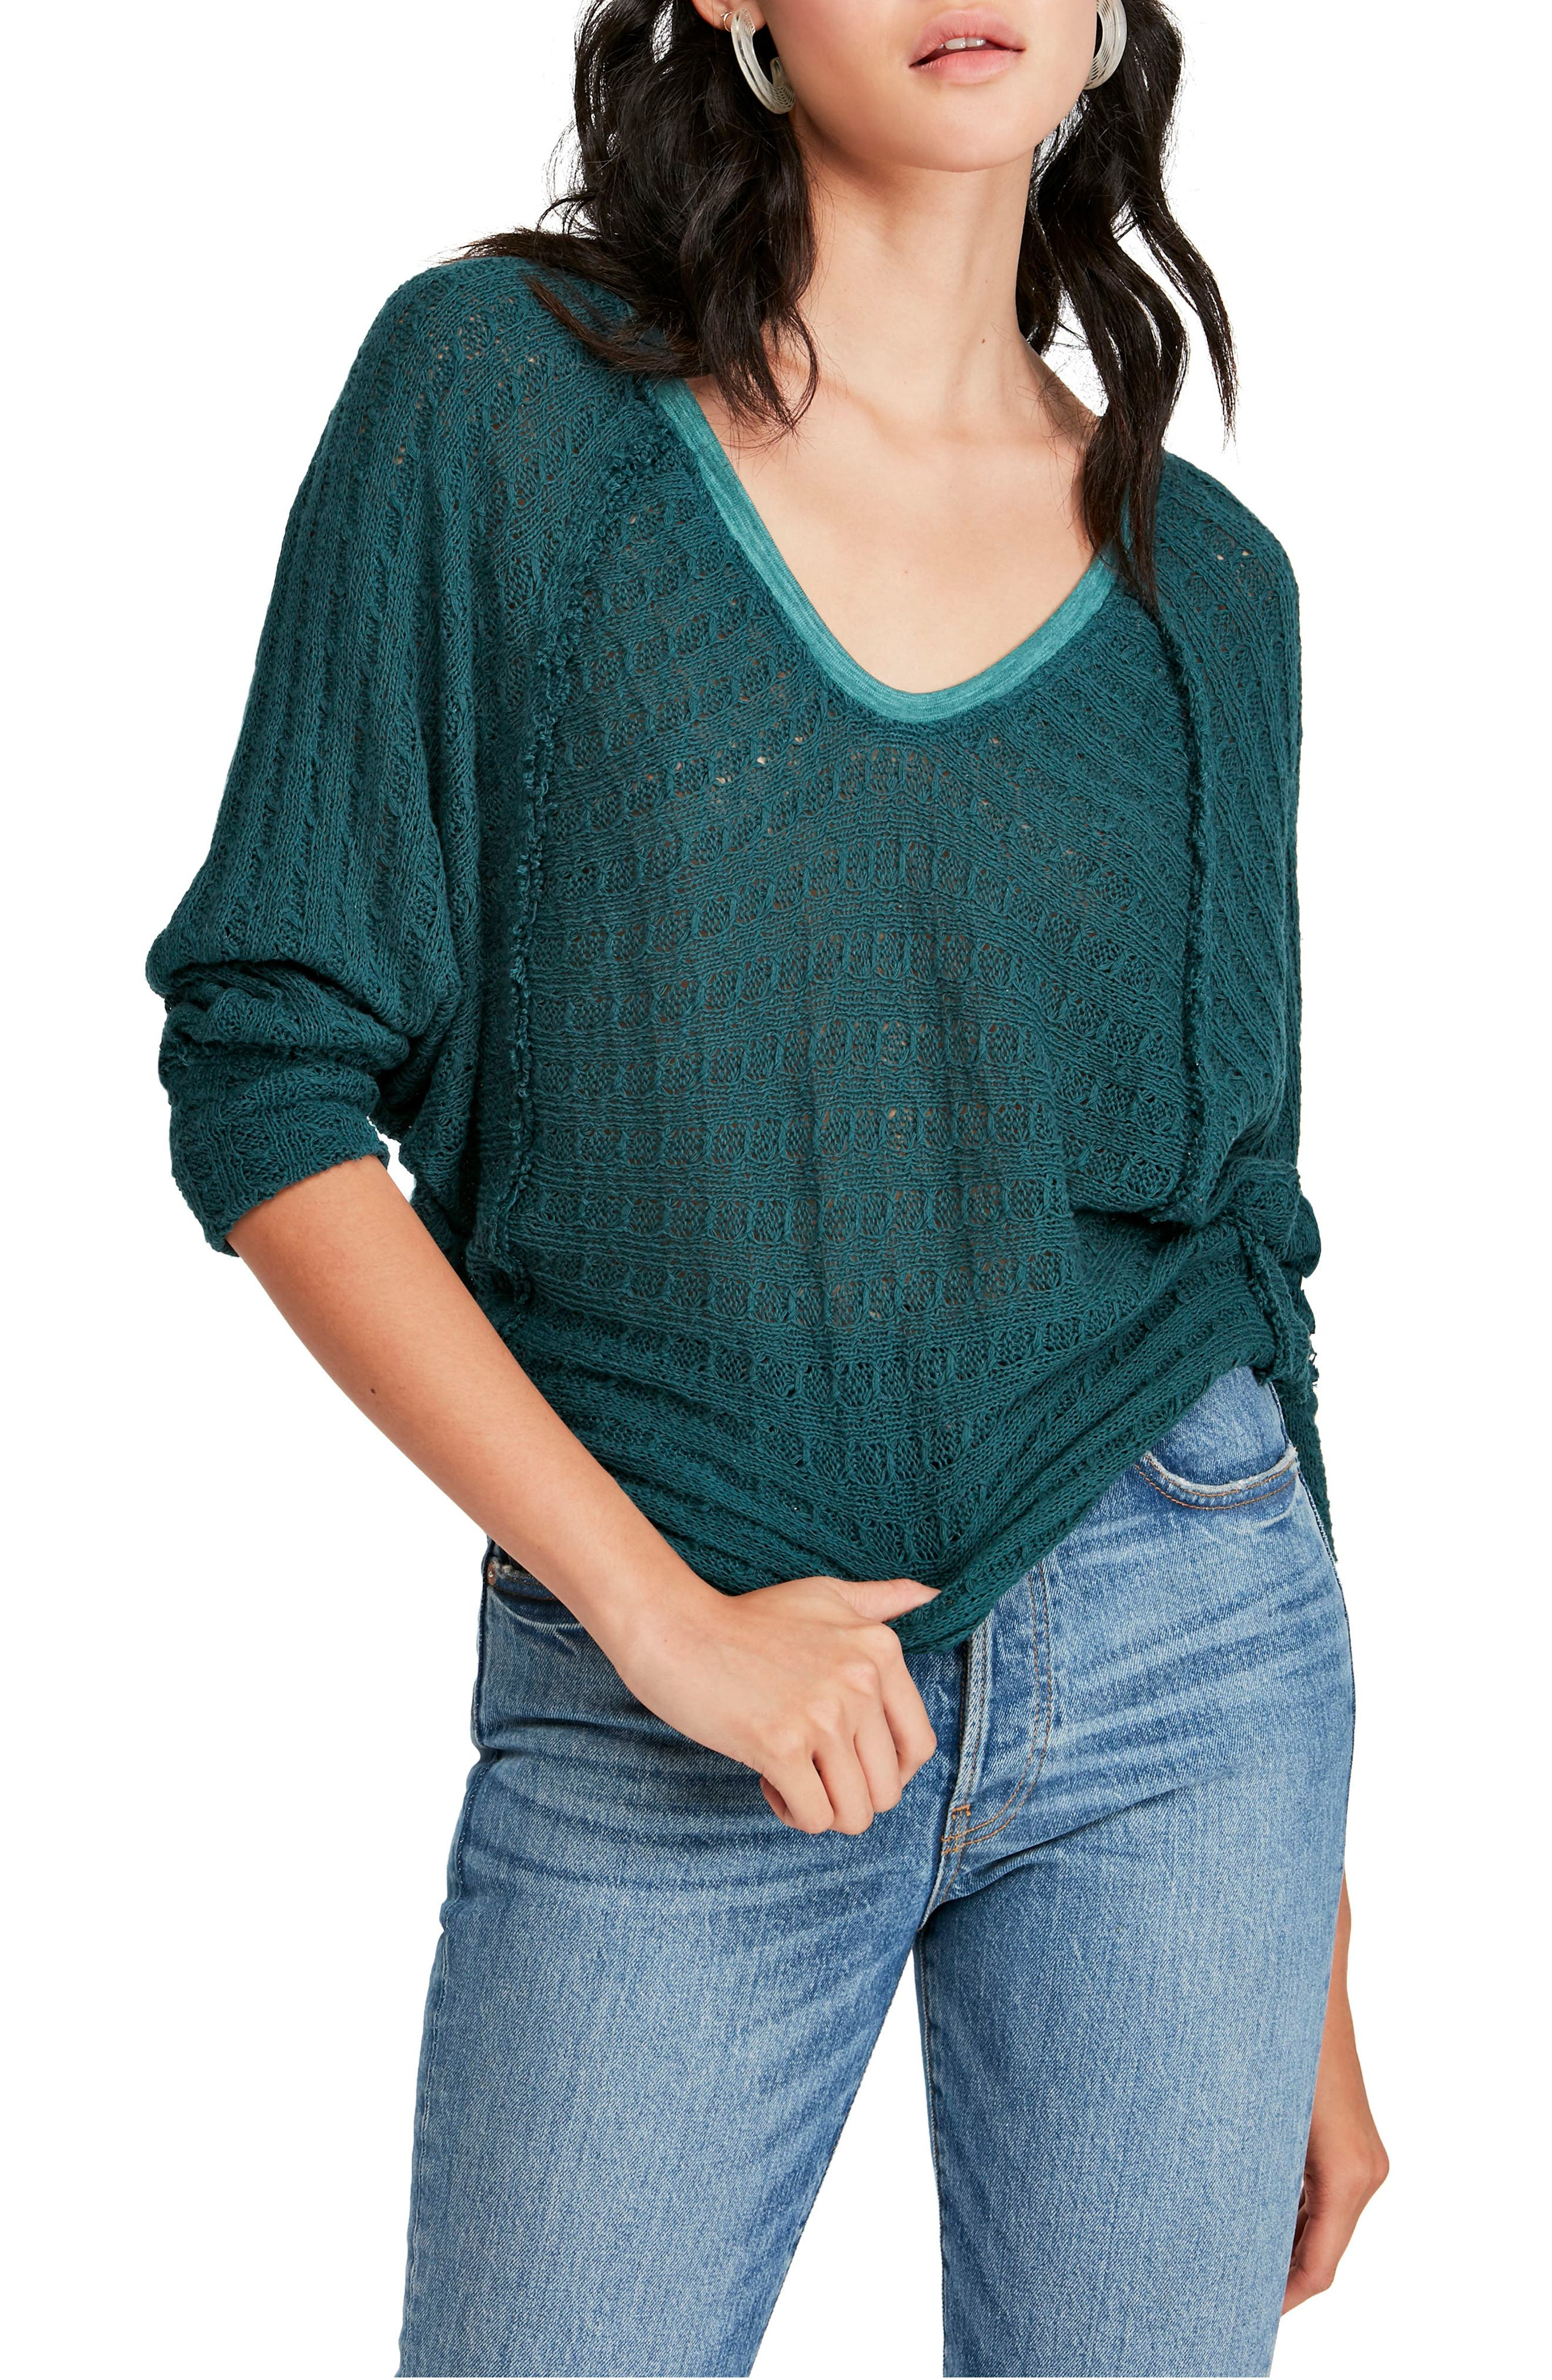 FREE PEOPLE Thien's Hacci Top, Main, color, TURQUOISE